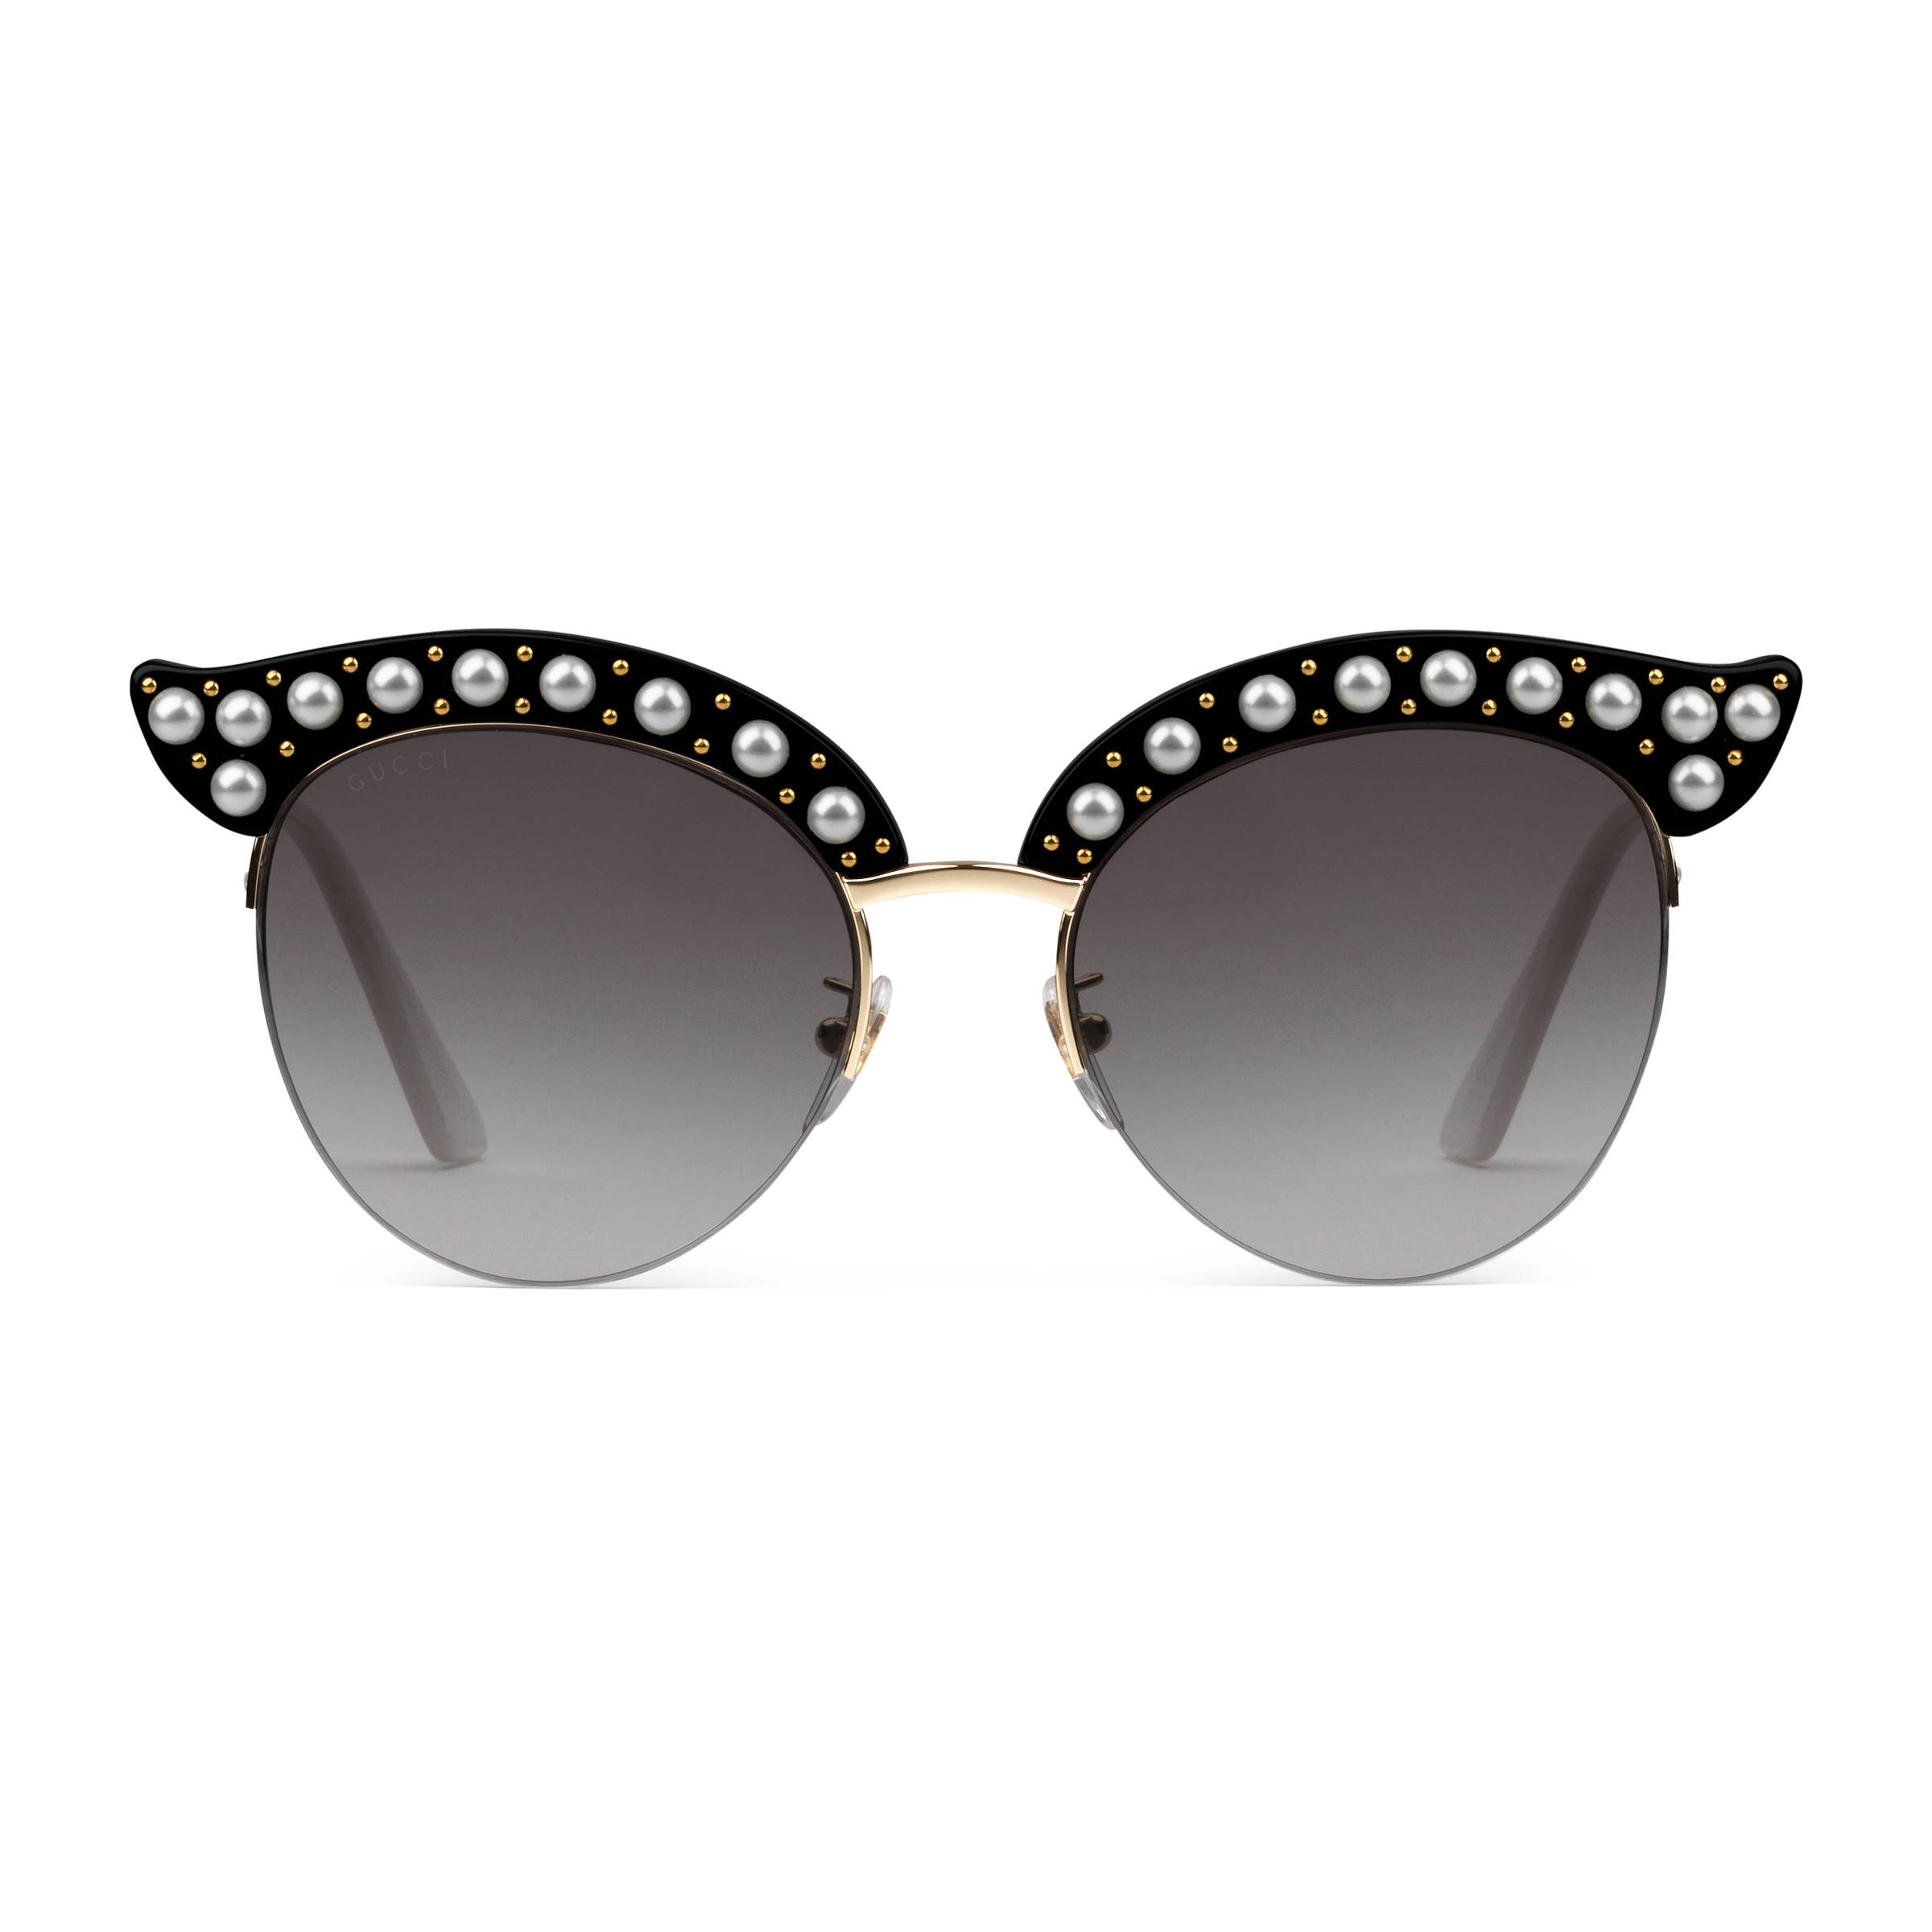 8b5fe938d19 cat-eye-acetate-sunglasses-with-pearls-gucci-com-photo.jpg 1542184670